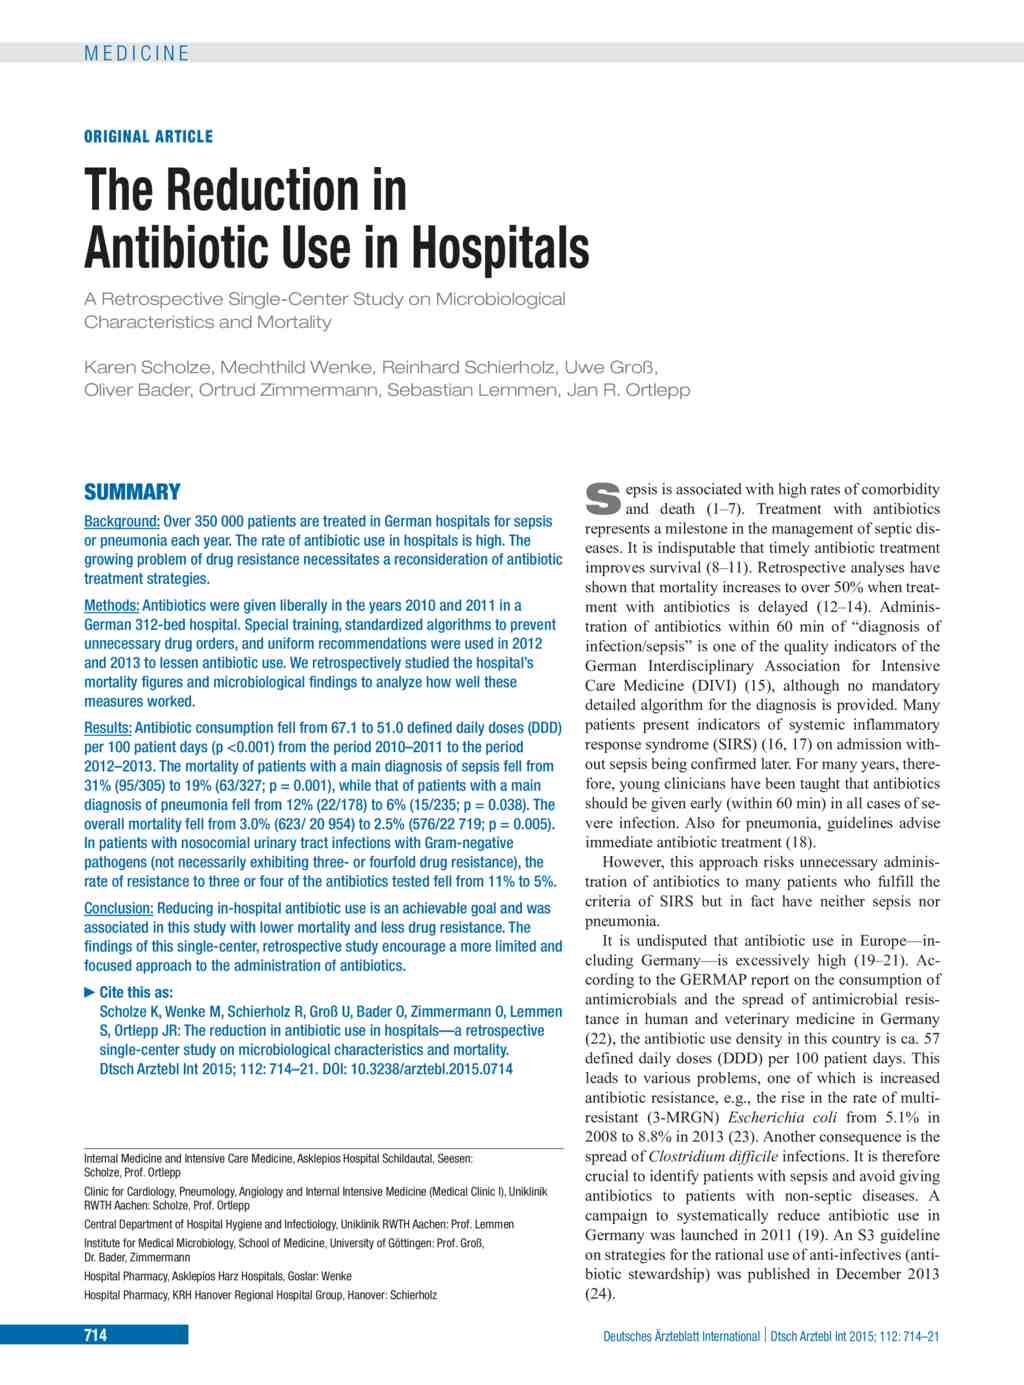 The Reduction in Antibiotic Use in Hospitals (16 10 2015)